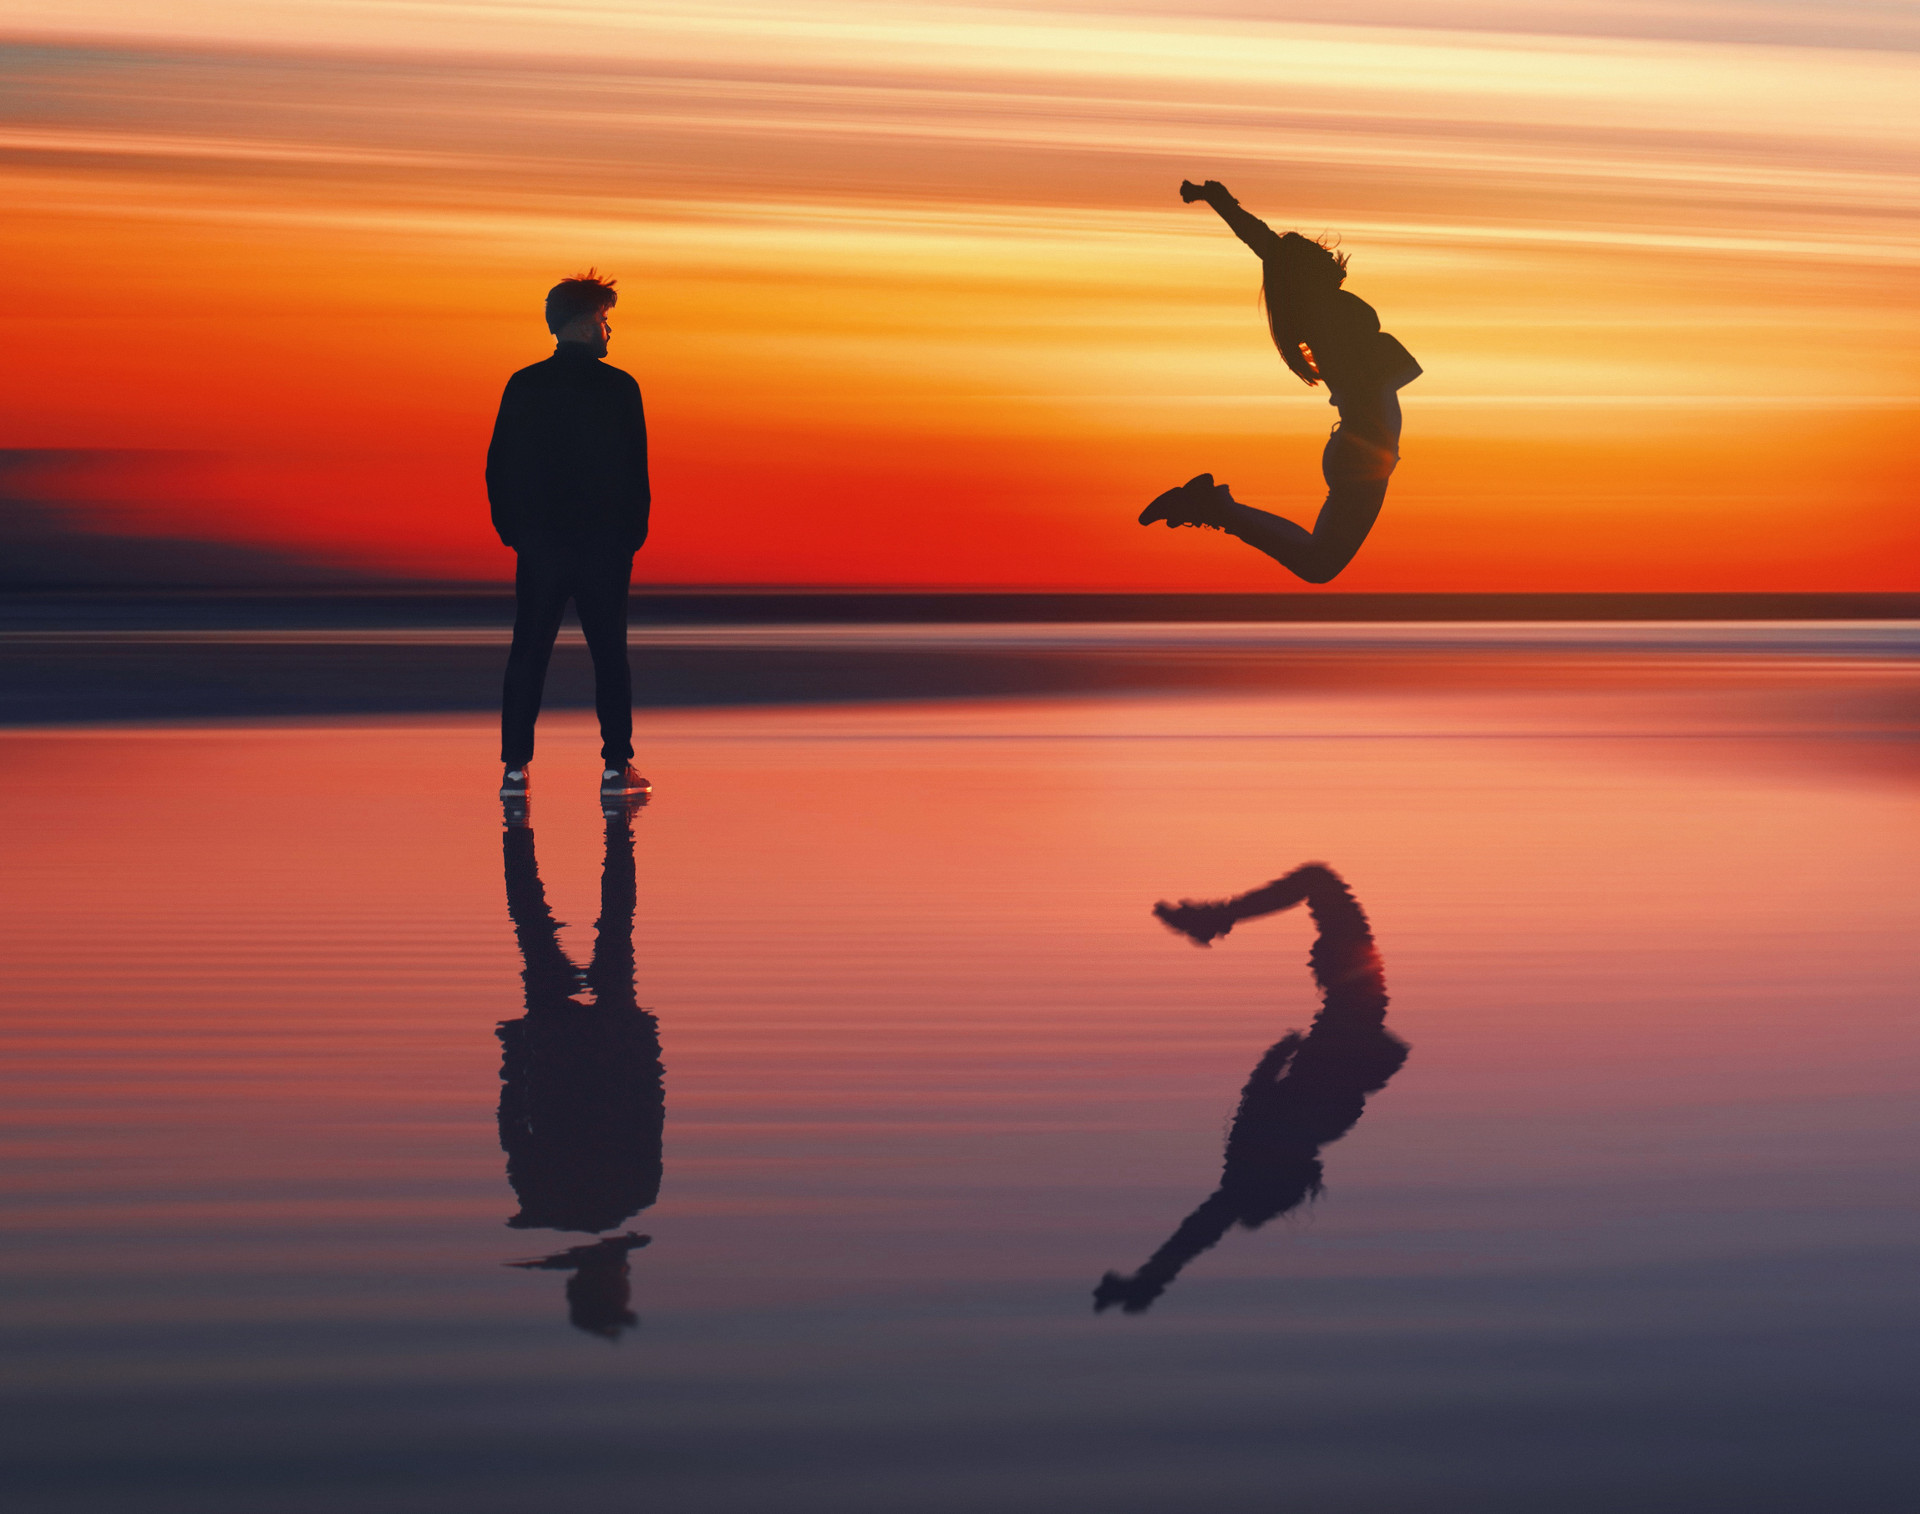 Sunset Person Jumping – 1920w